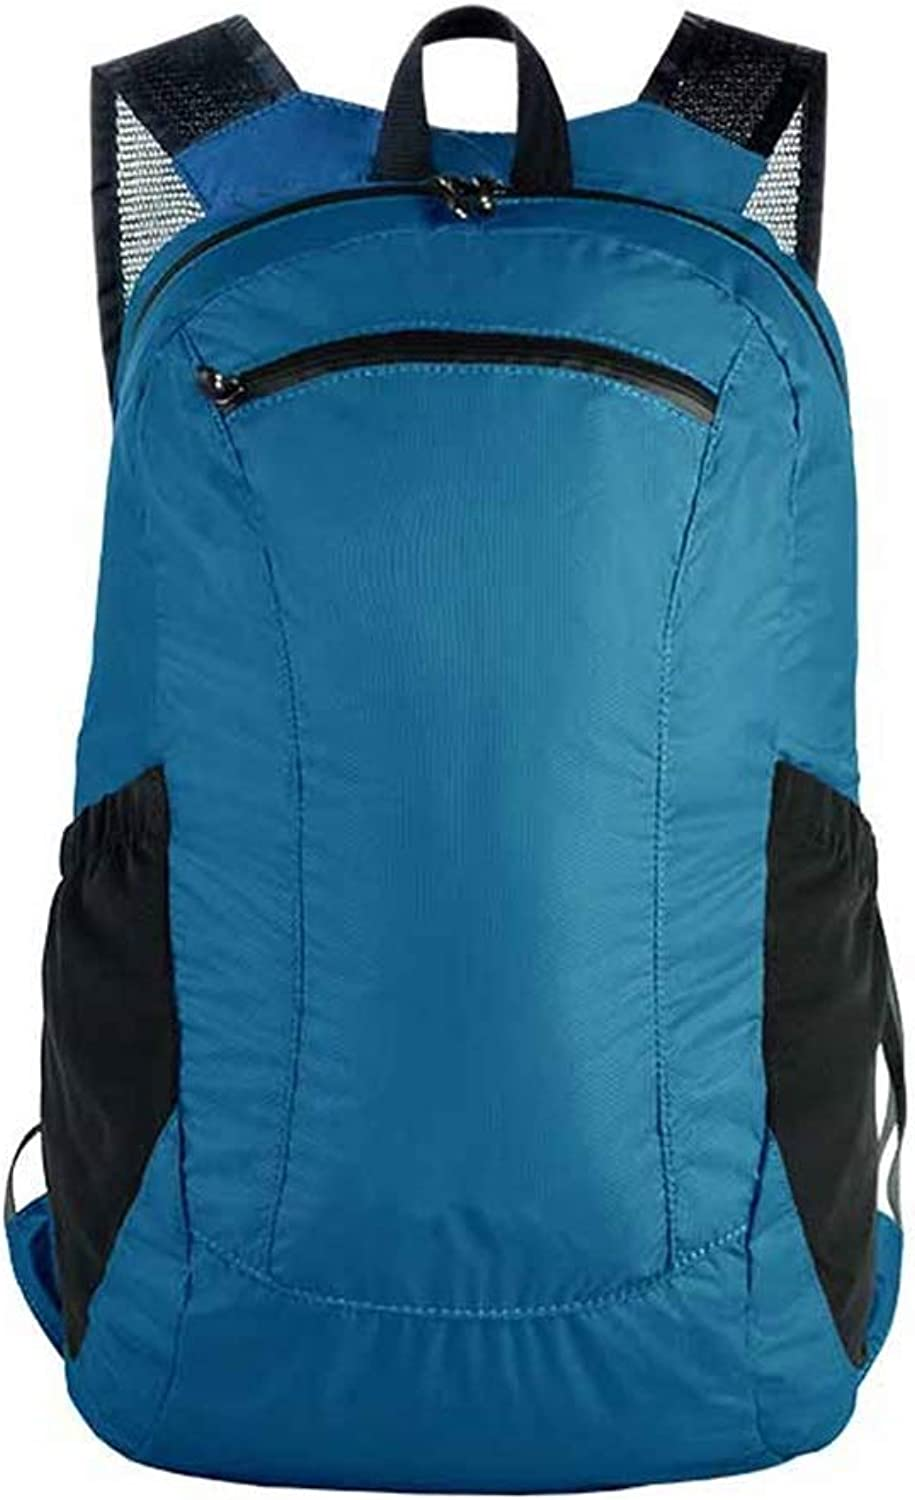 Casual Outdoor Unisex Backpack Large Capacity Waterproof Multicolor Collapsible Outdoor Sports and Hiking Hiking Backpack